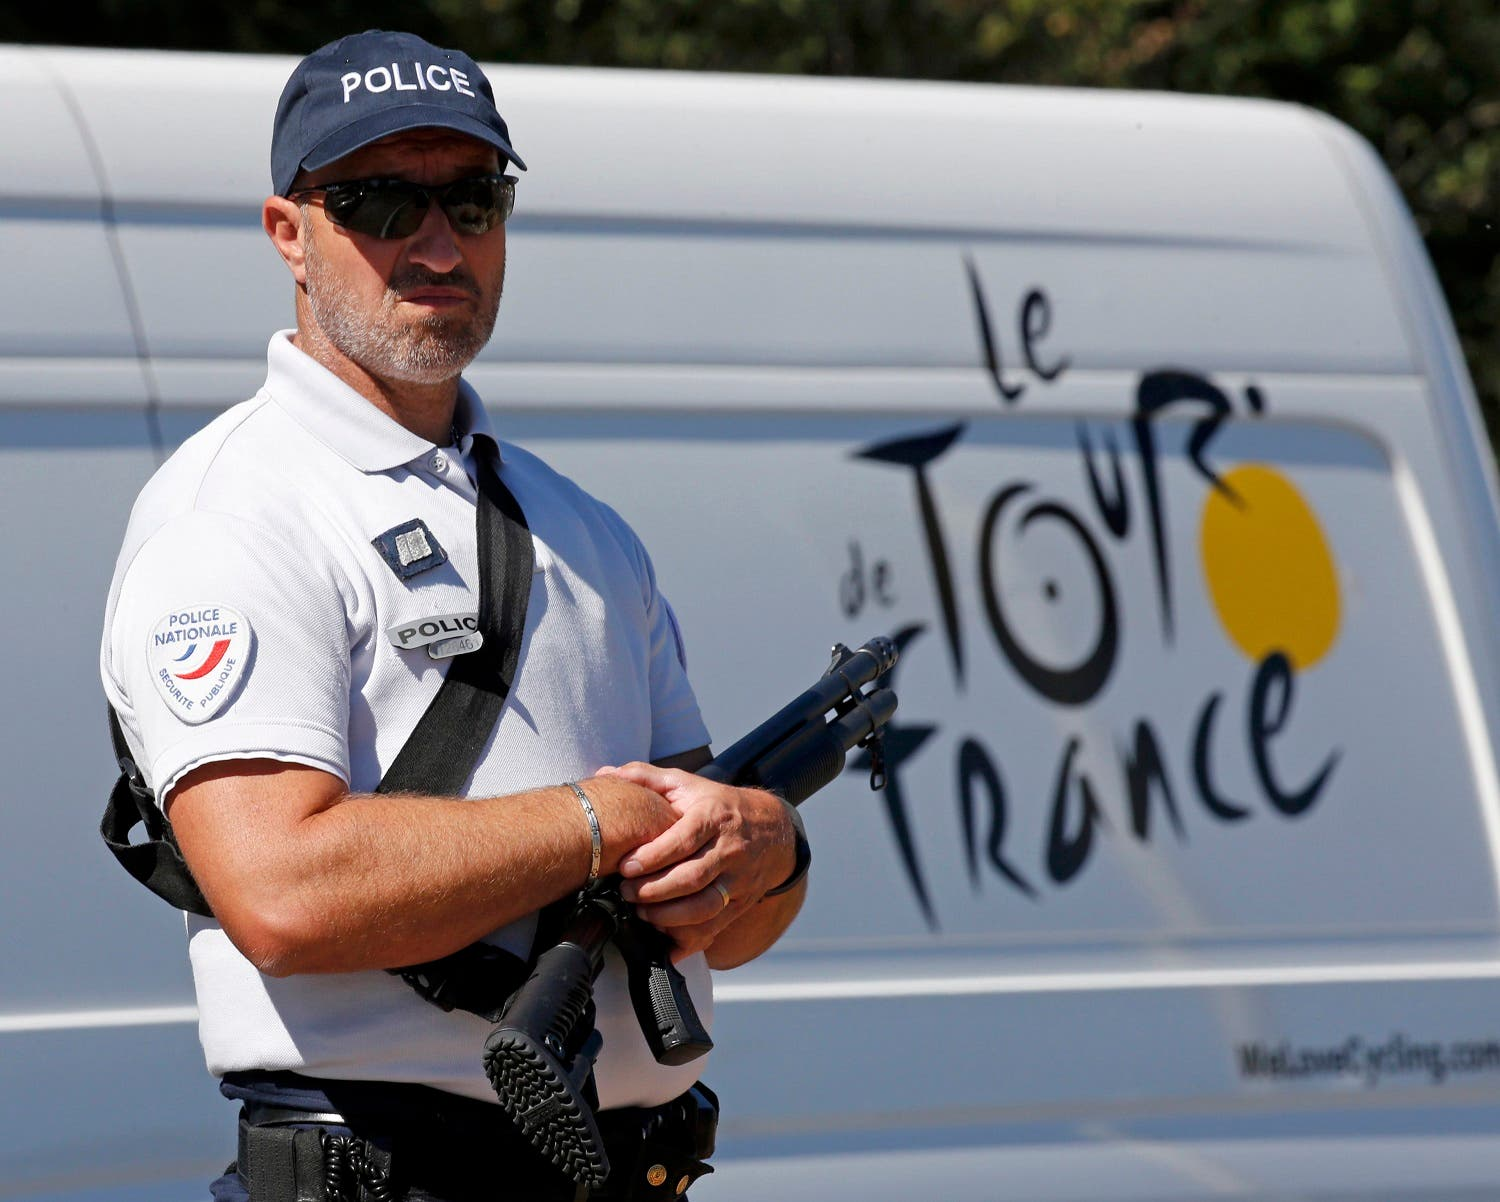 Armed French police secures area near the start of the Tour de France. (Reuters)